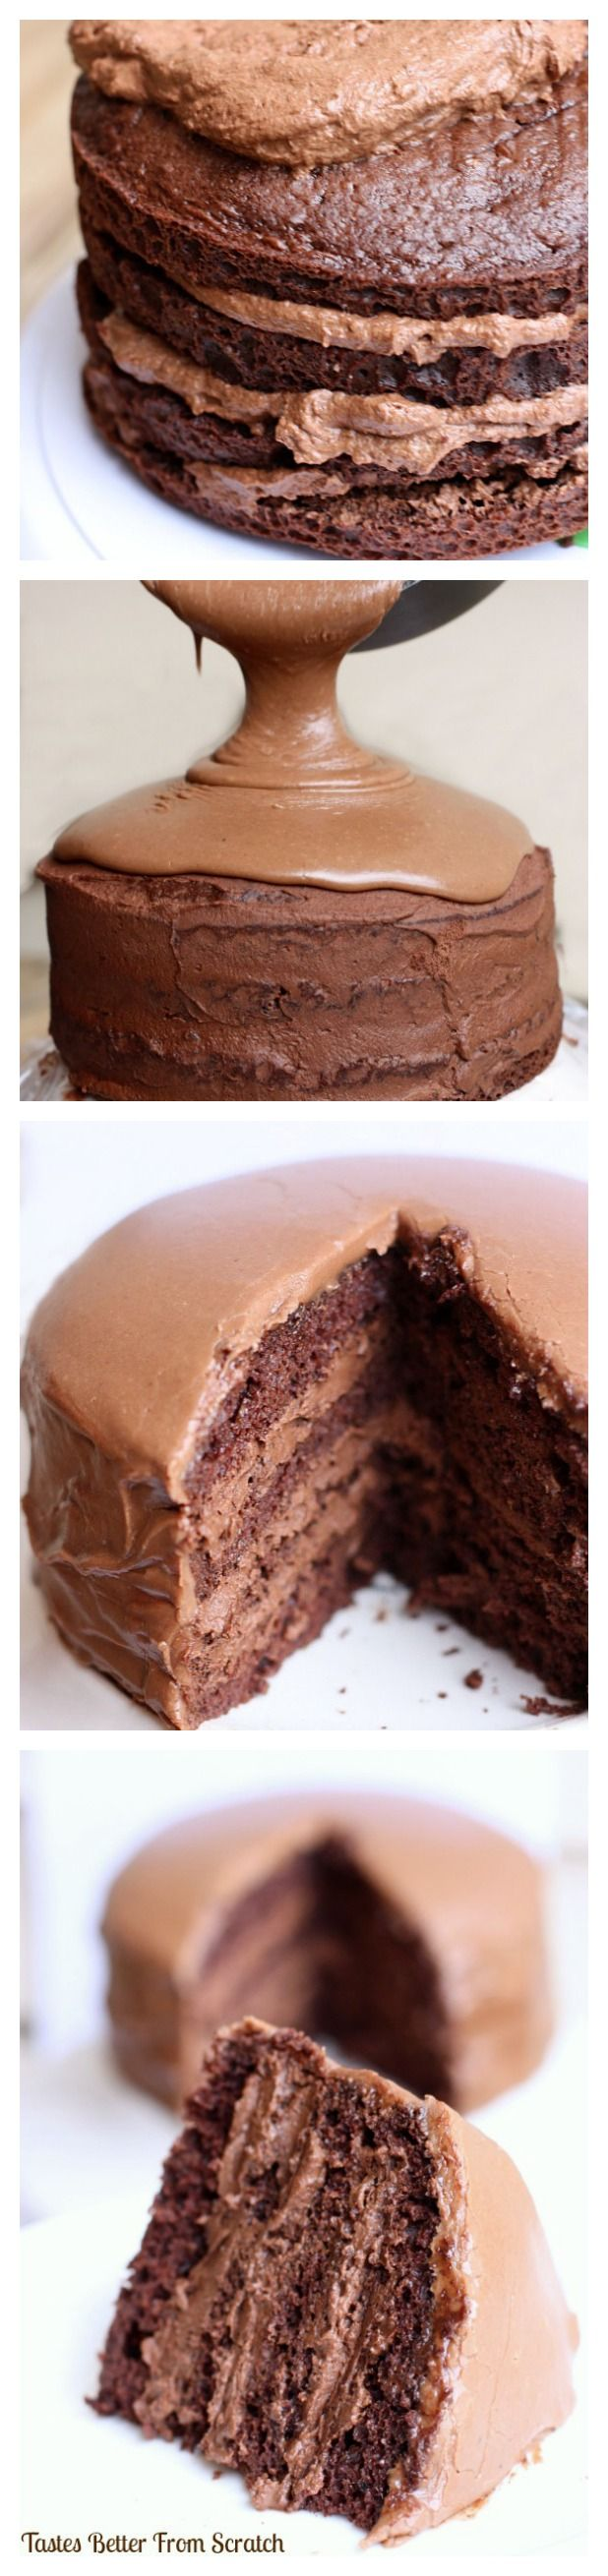 Chocolate Cake with Chocolate Mousse Filling!